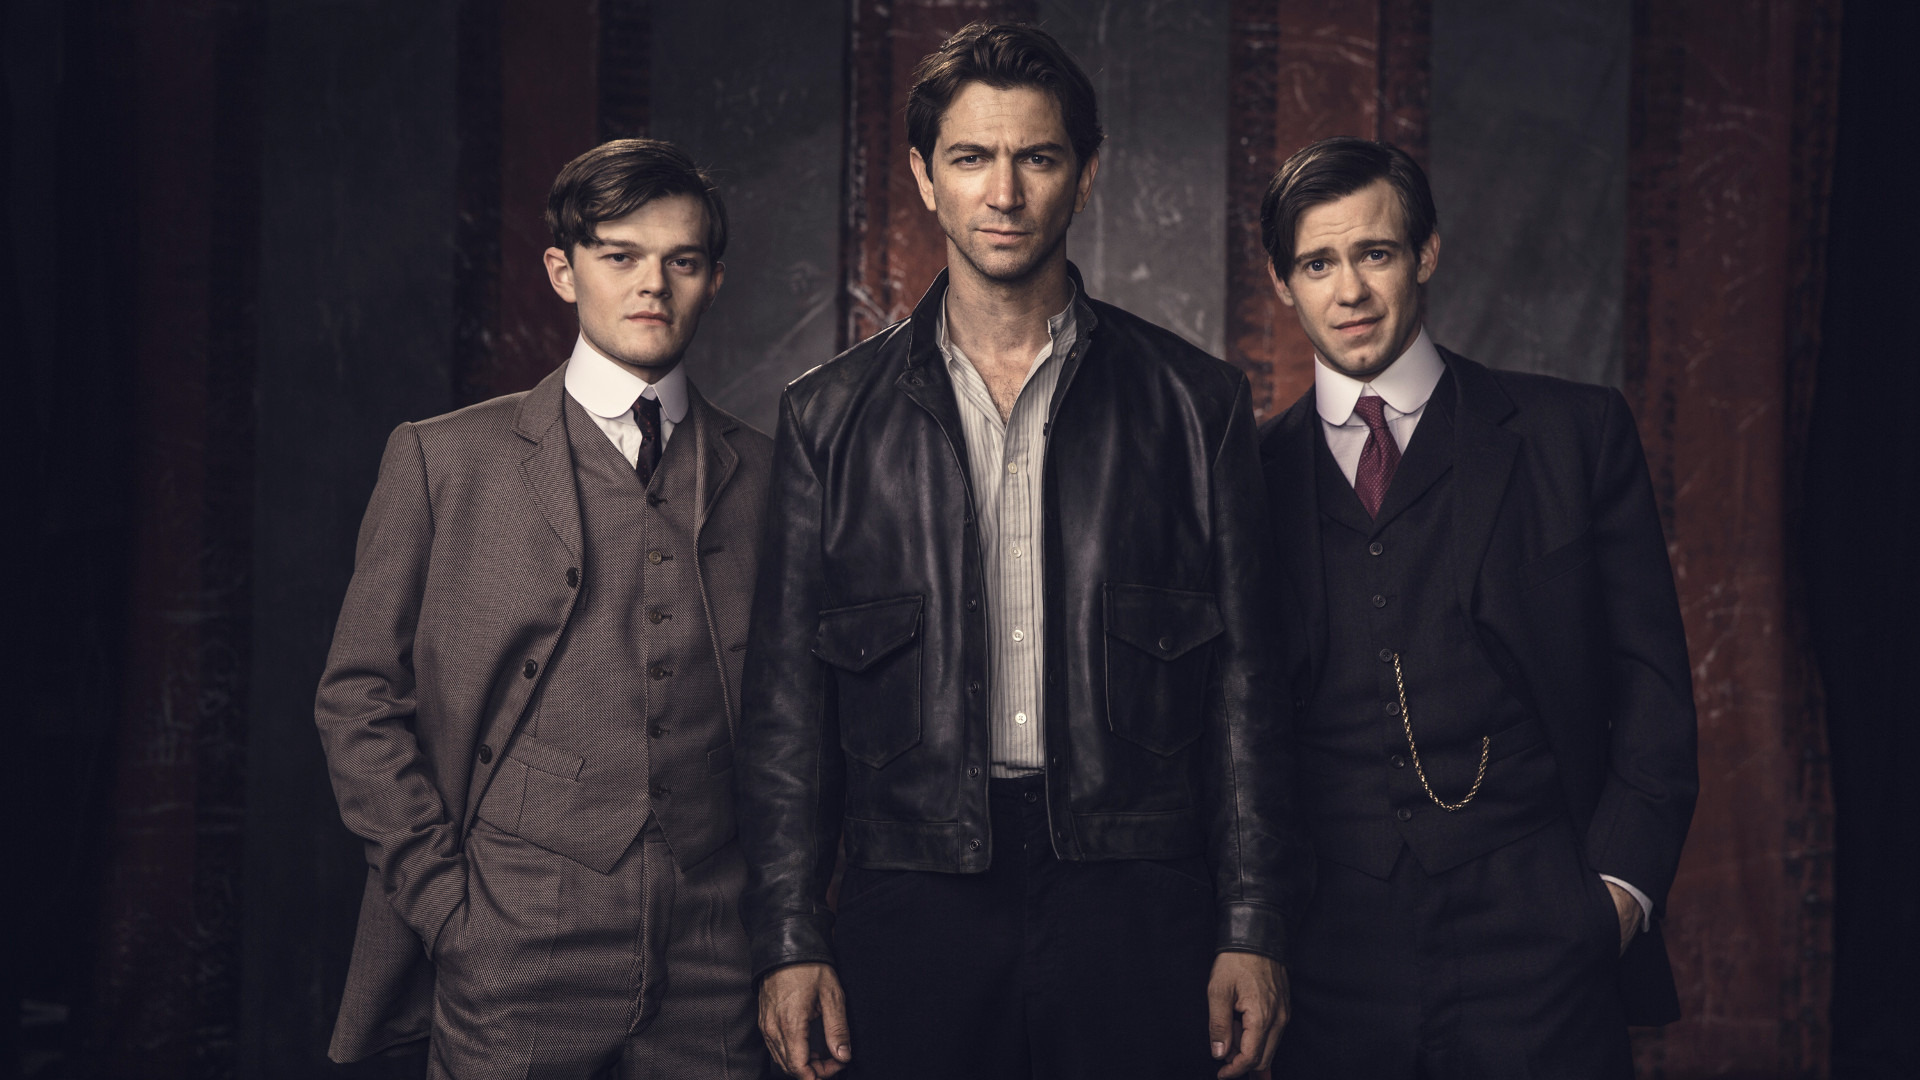 Show Harley and the Davidsons